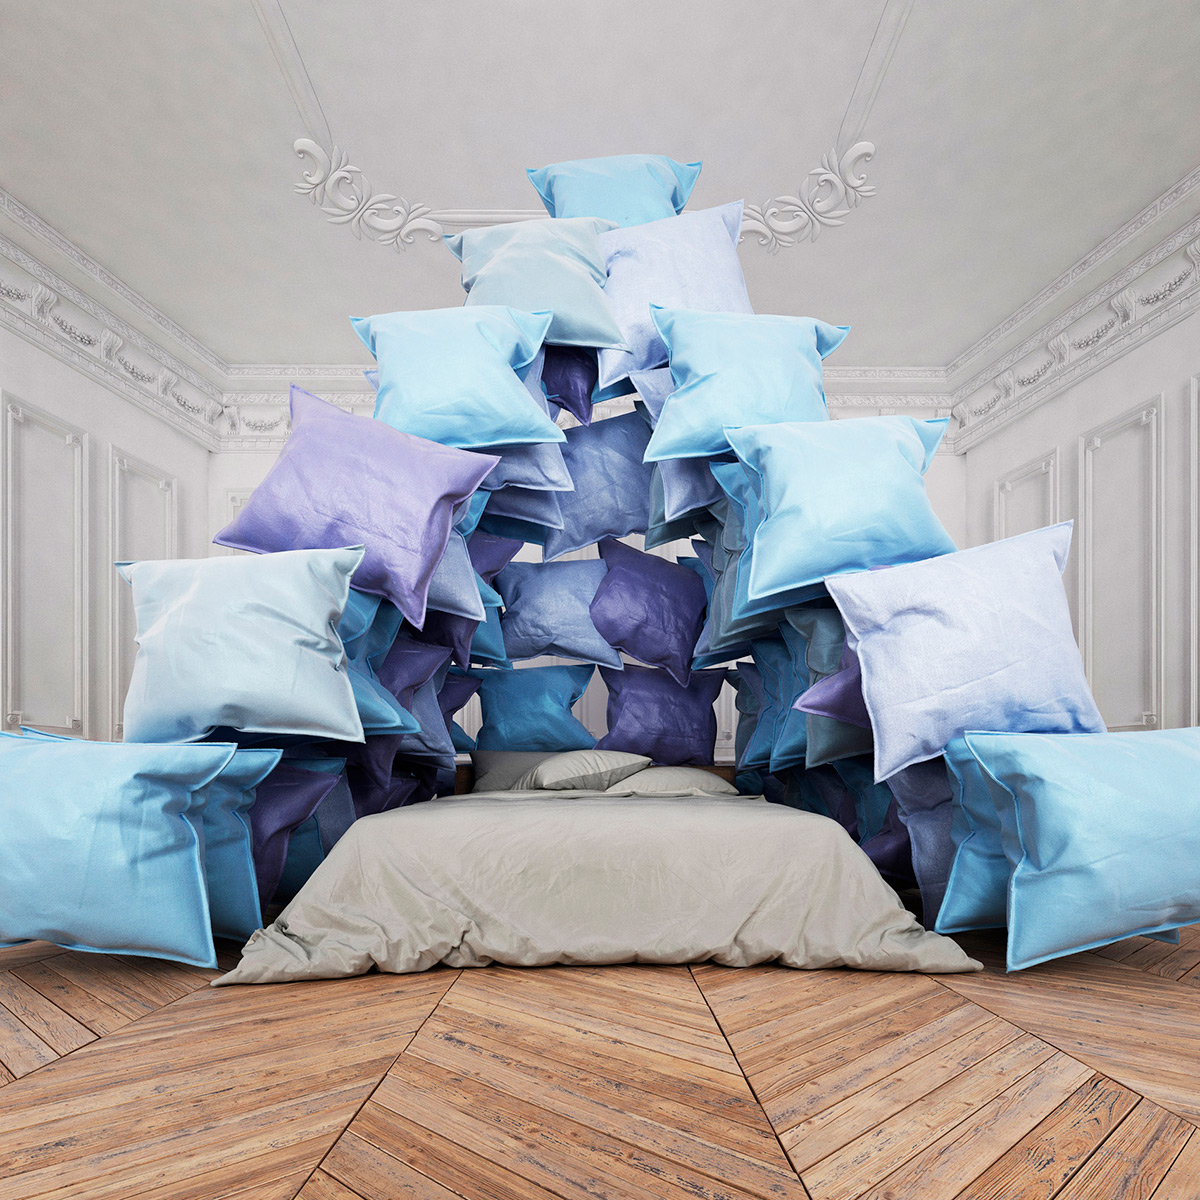 Pillow-Pyramid-Cyril-Lancelin-03